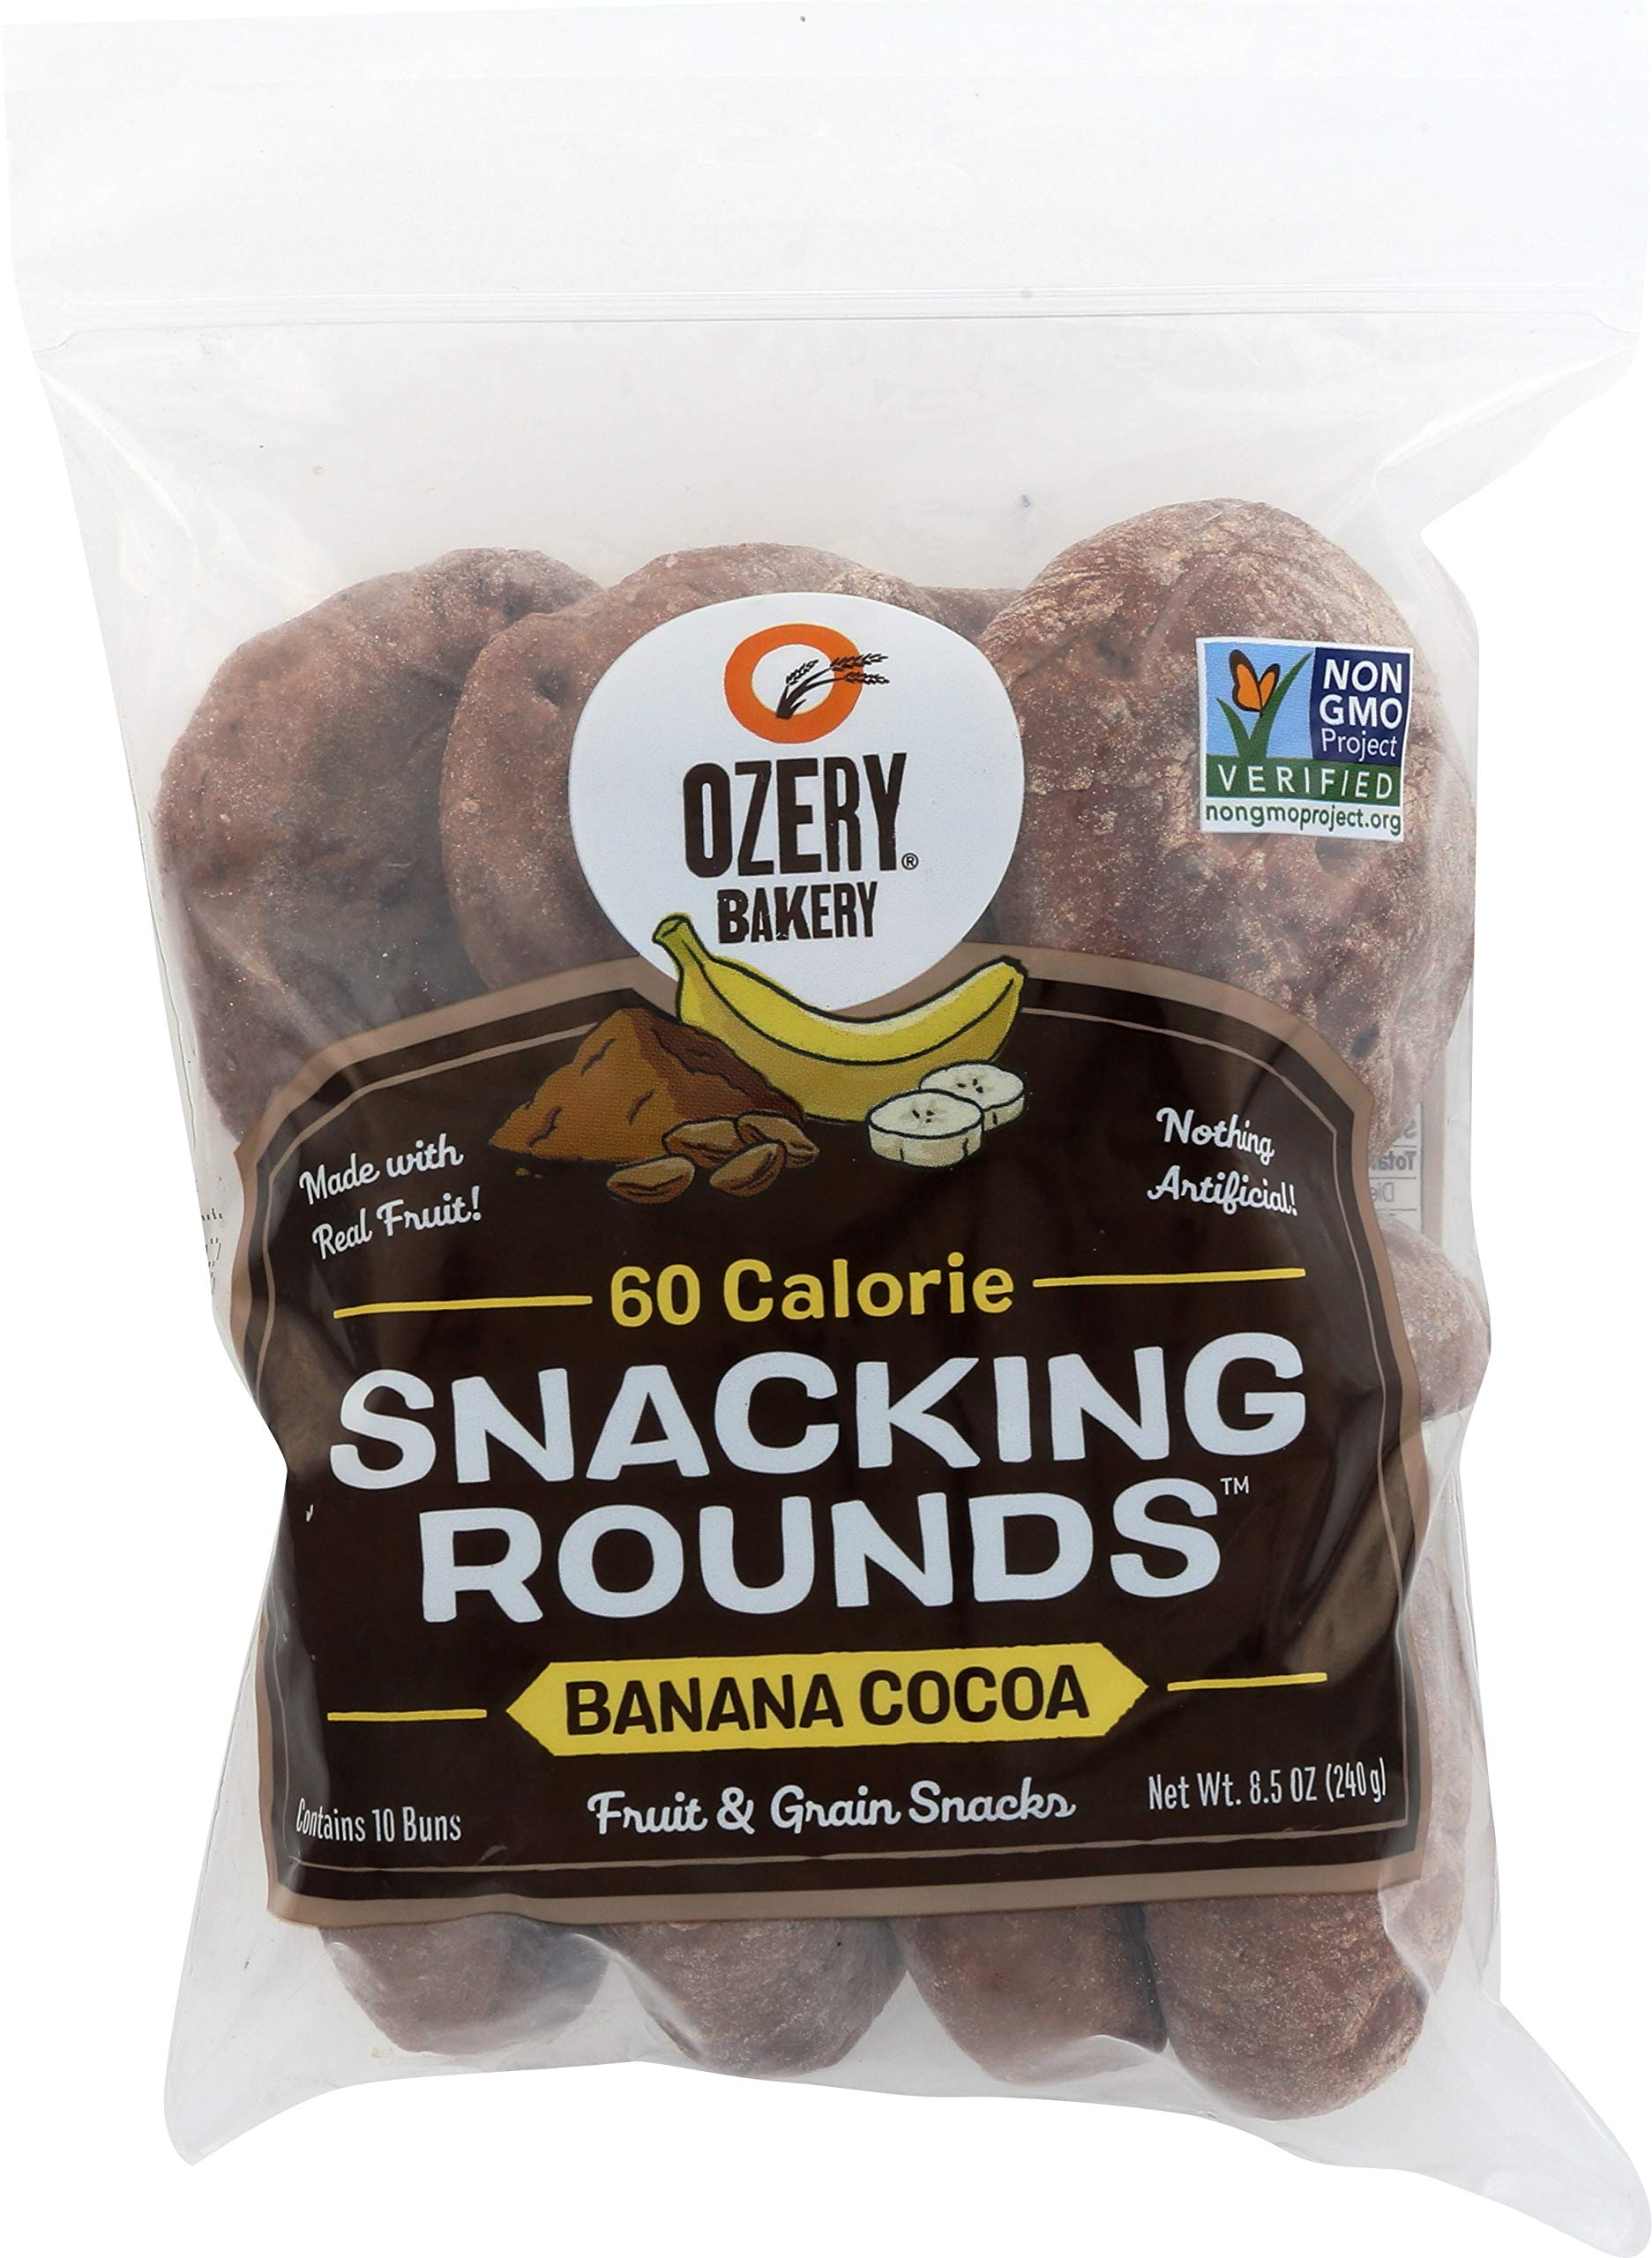 Ozery Bakery Fruit and Grain Snacks, Banana Cocoa Snacking Rounds, Bite Sized 60 Cal Snack, 8.4 Ounce (pack Of 6)